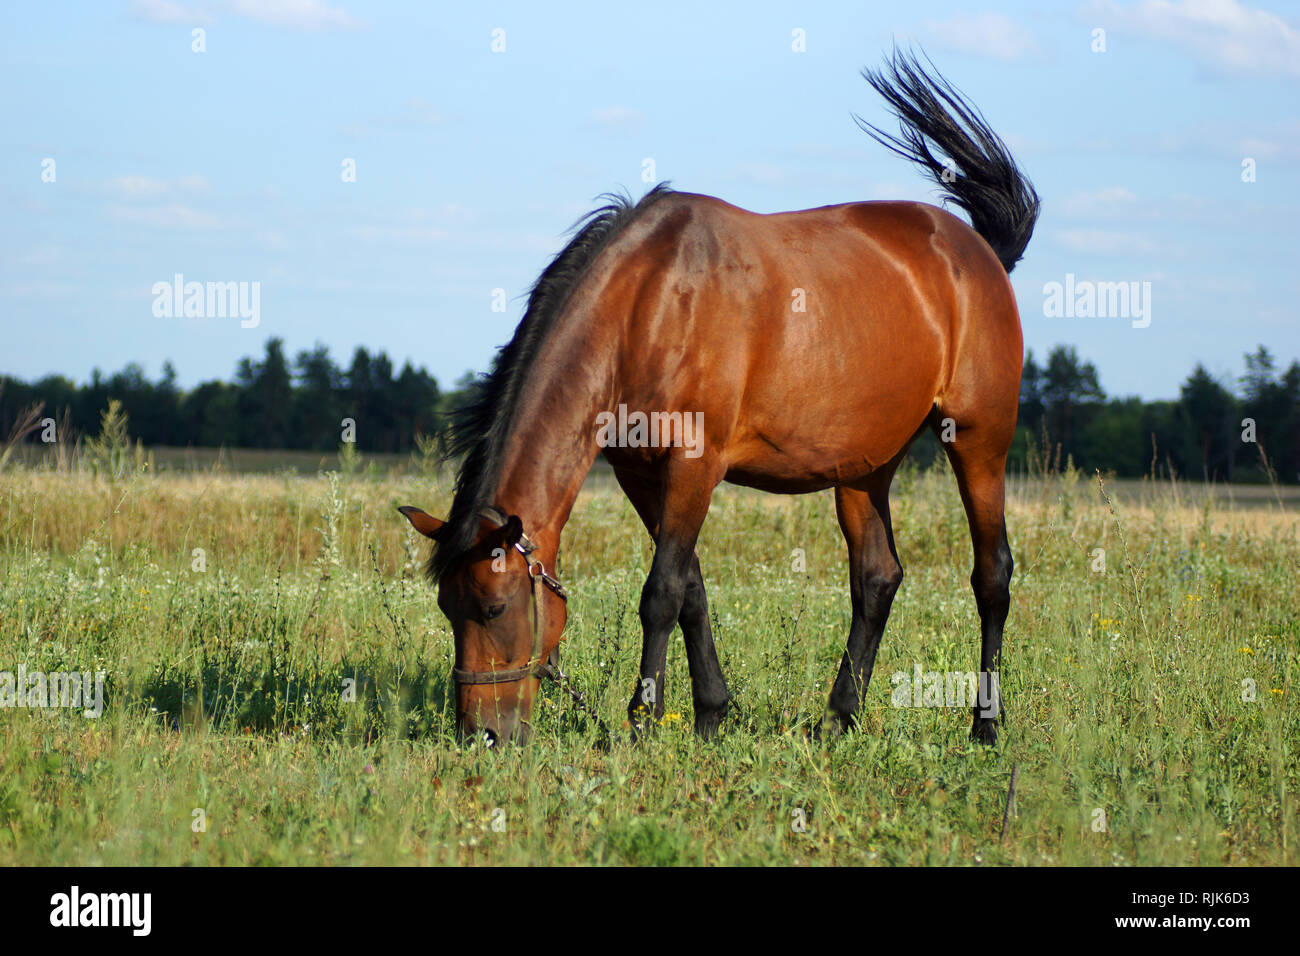 horse (Equus ferus caballus). A pet horse is grazed in a meadow. - Stock Image